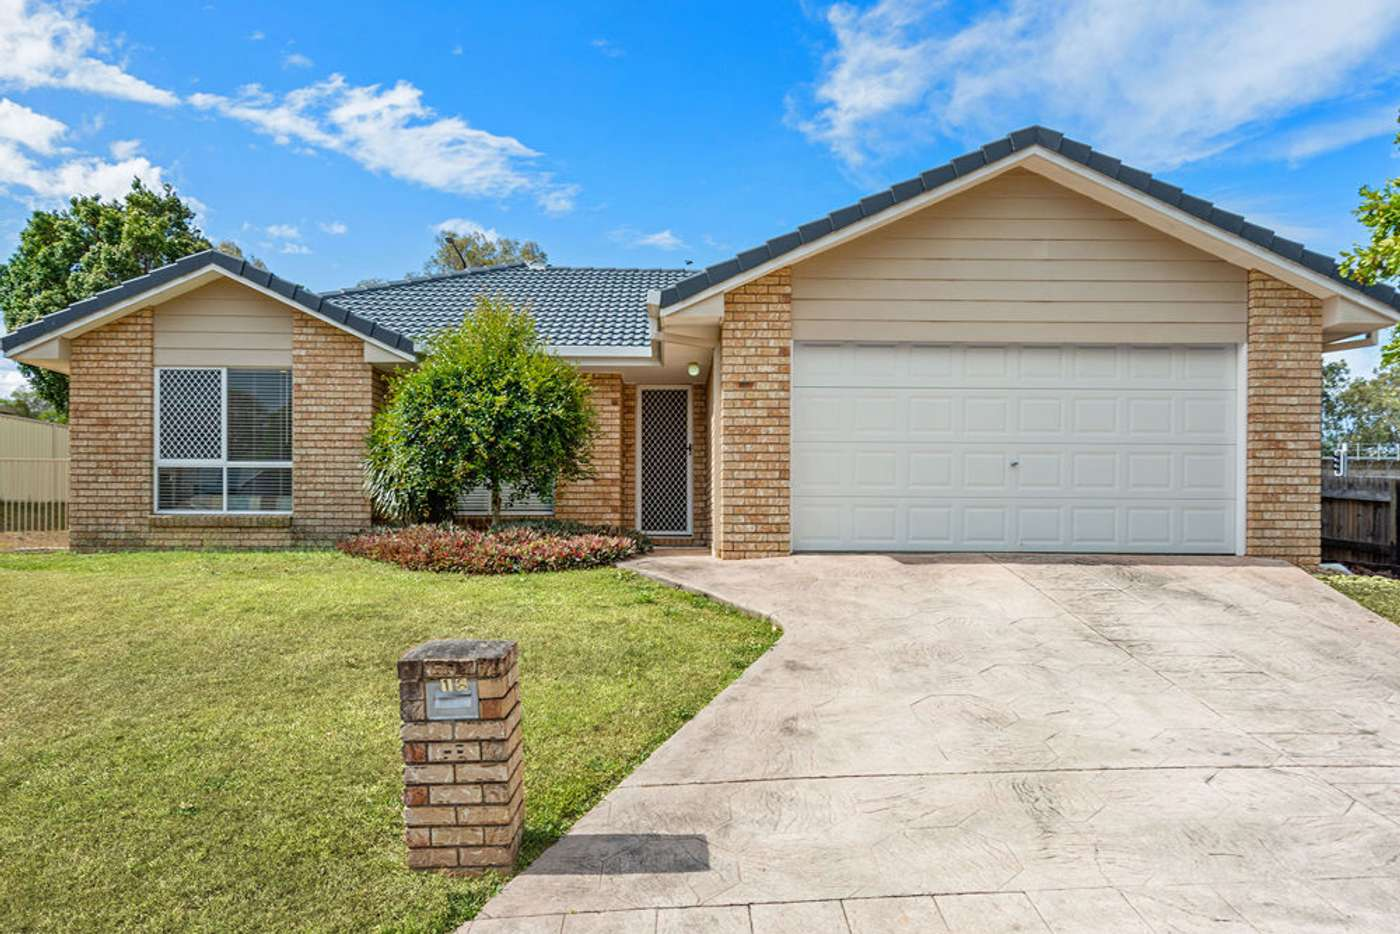 Main view of Homely house listing, 18 Ashwood Circuit, Birkdale QLD 4159